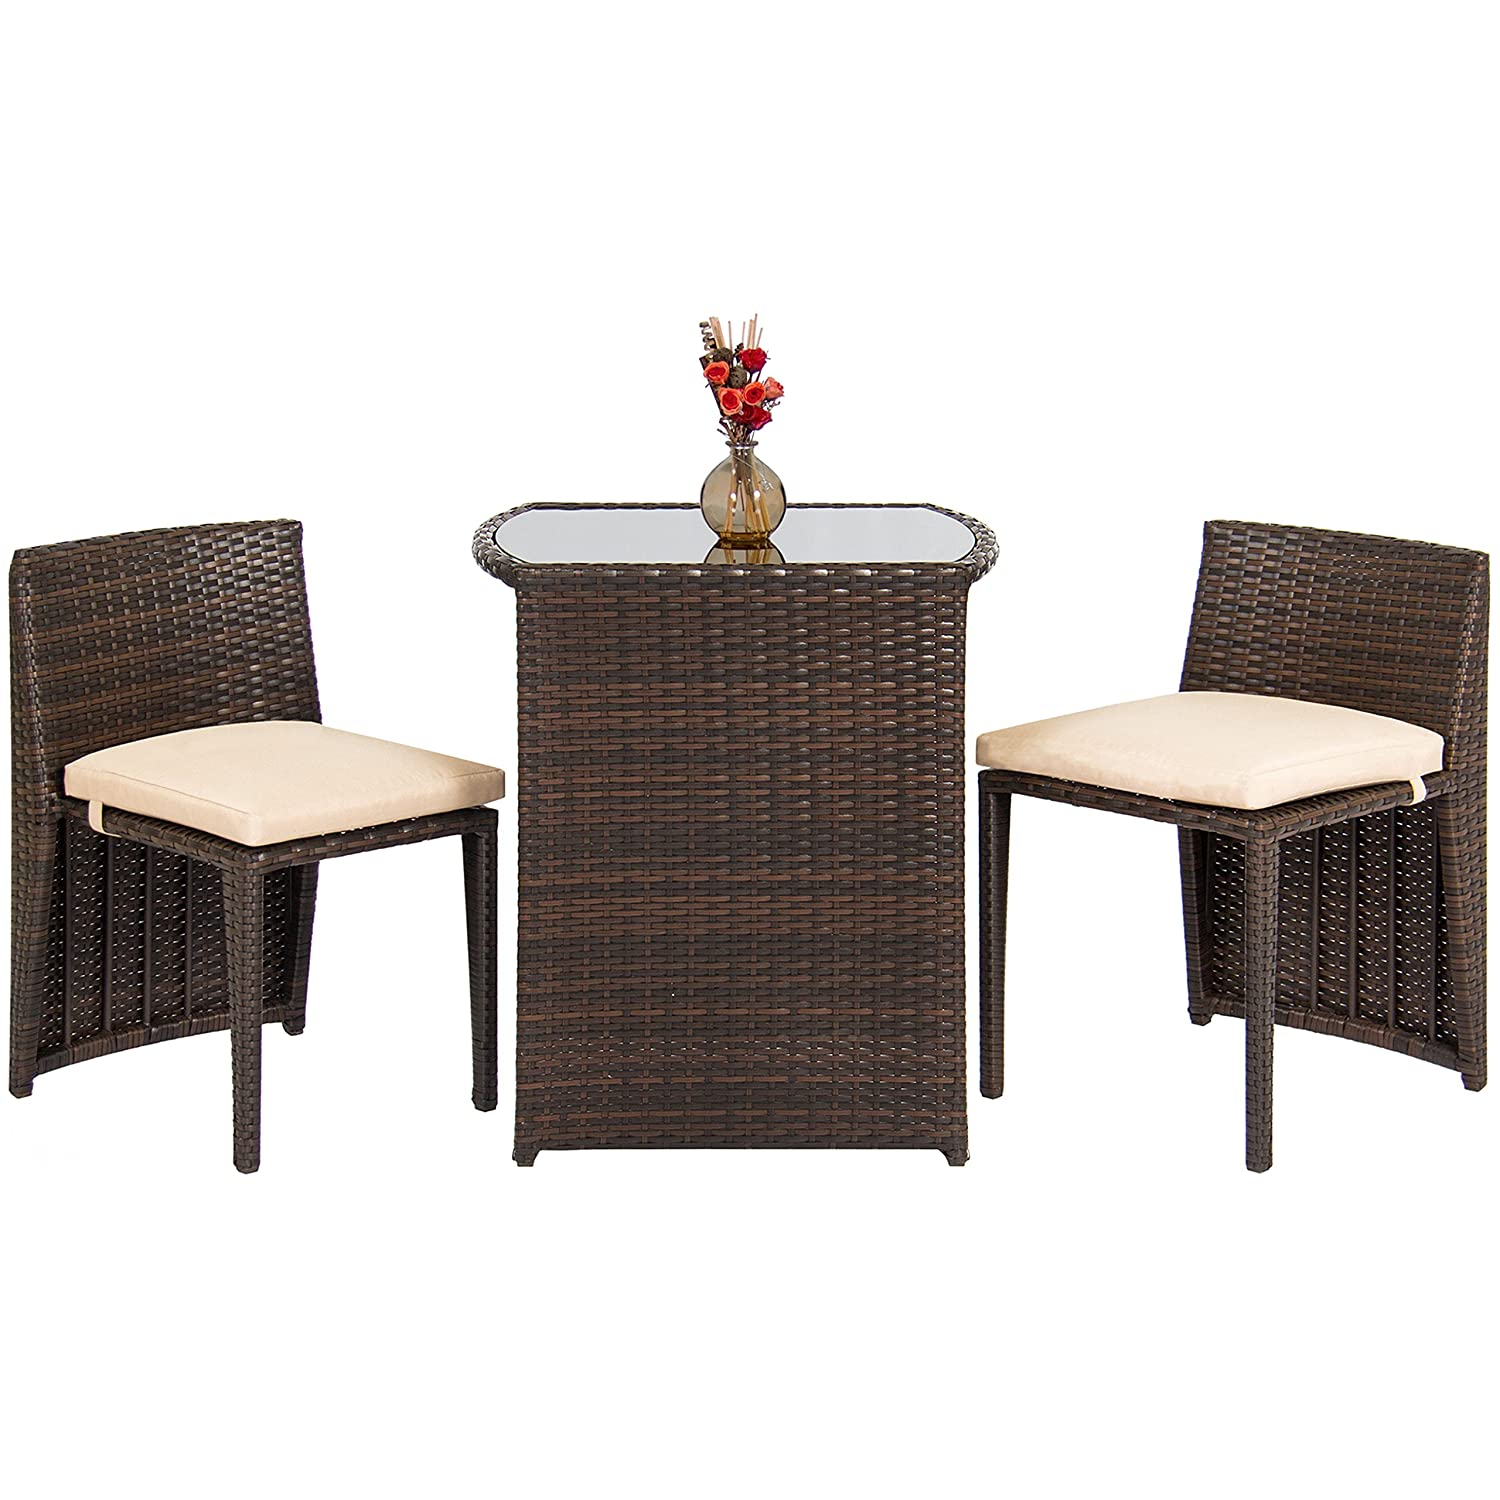 Amazon Best Choice Products Outdoor Patio Furniture Wicker